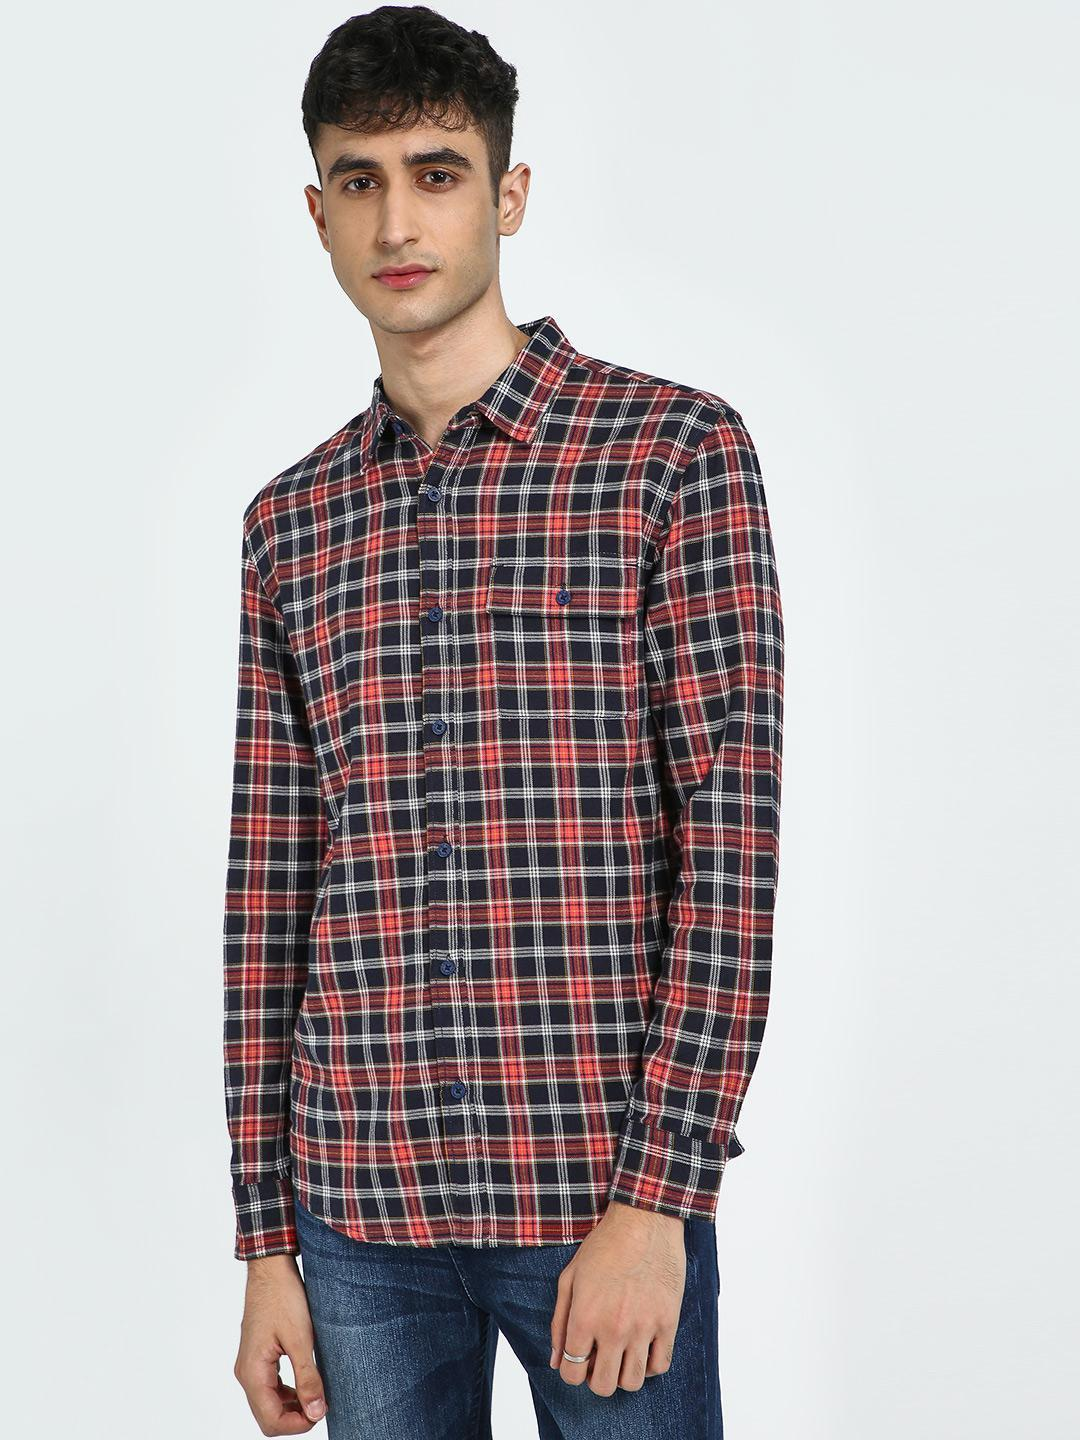 Blue Saint Multi Plaid Check Long Sleeve Shirt 1